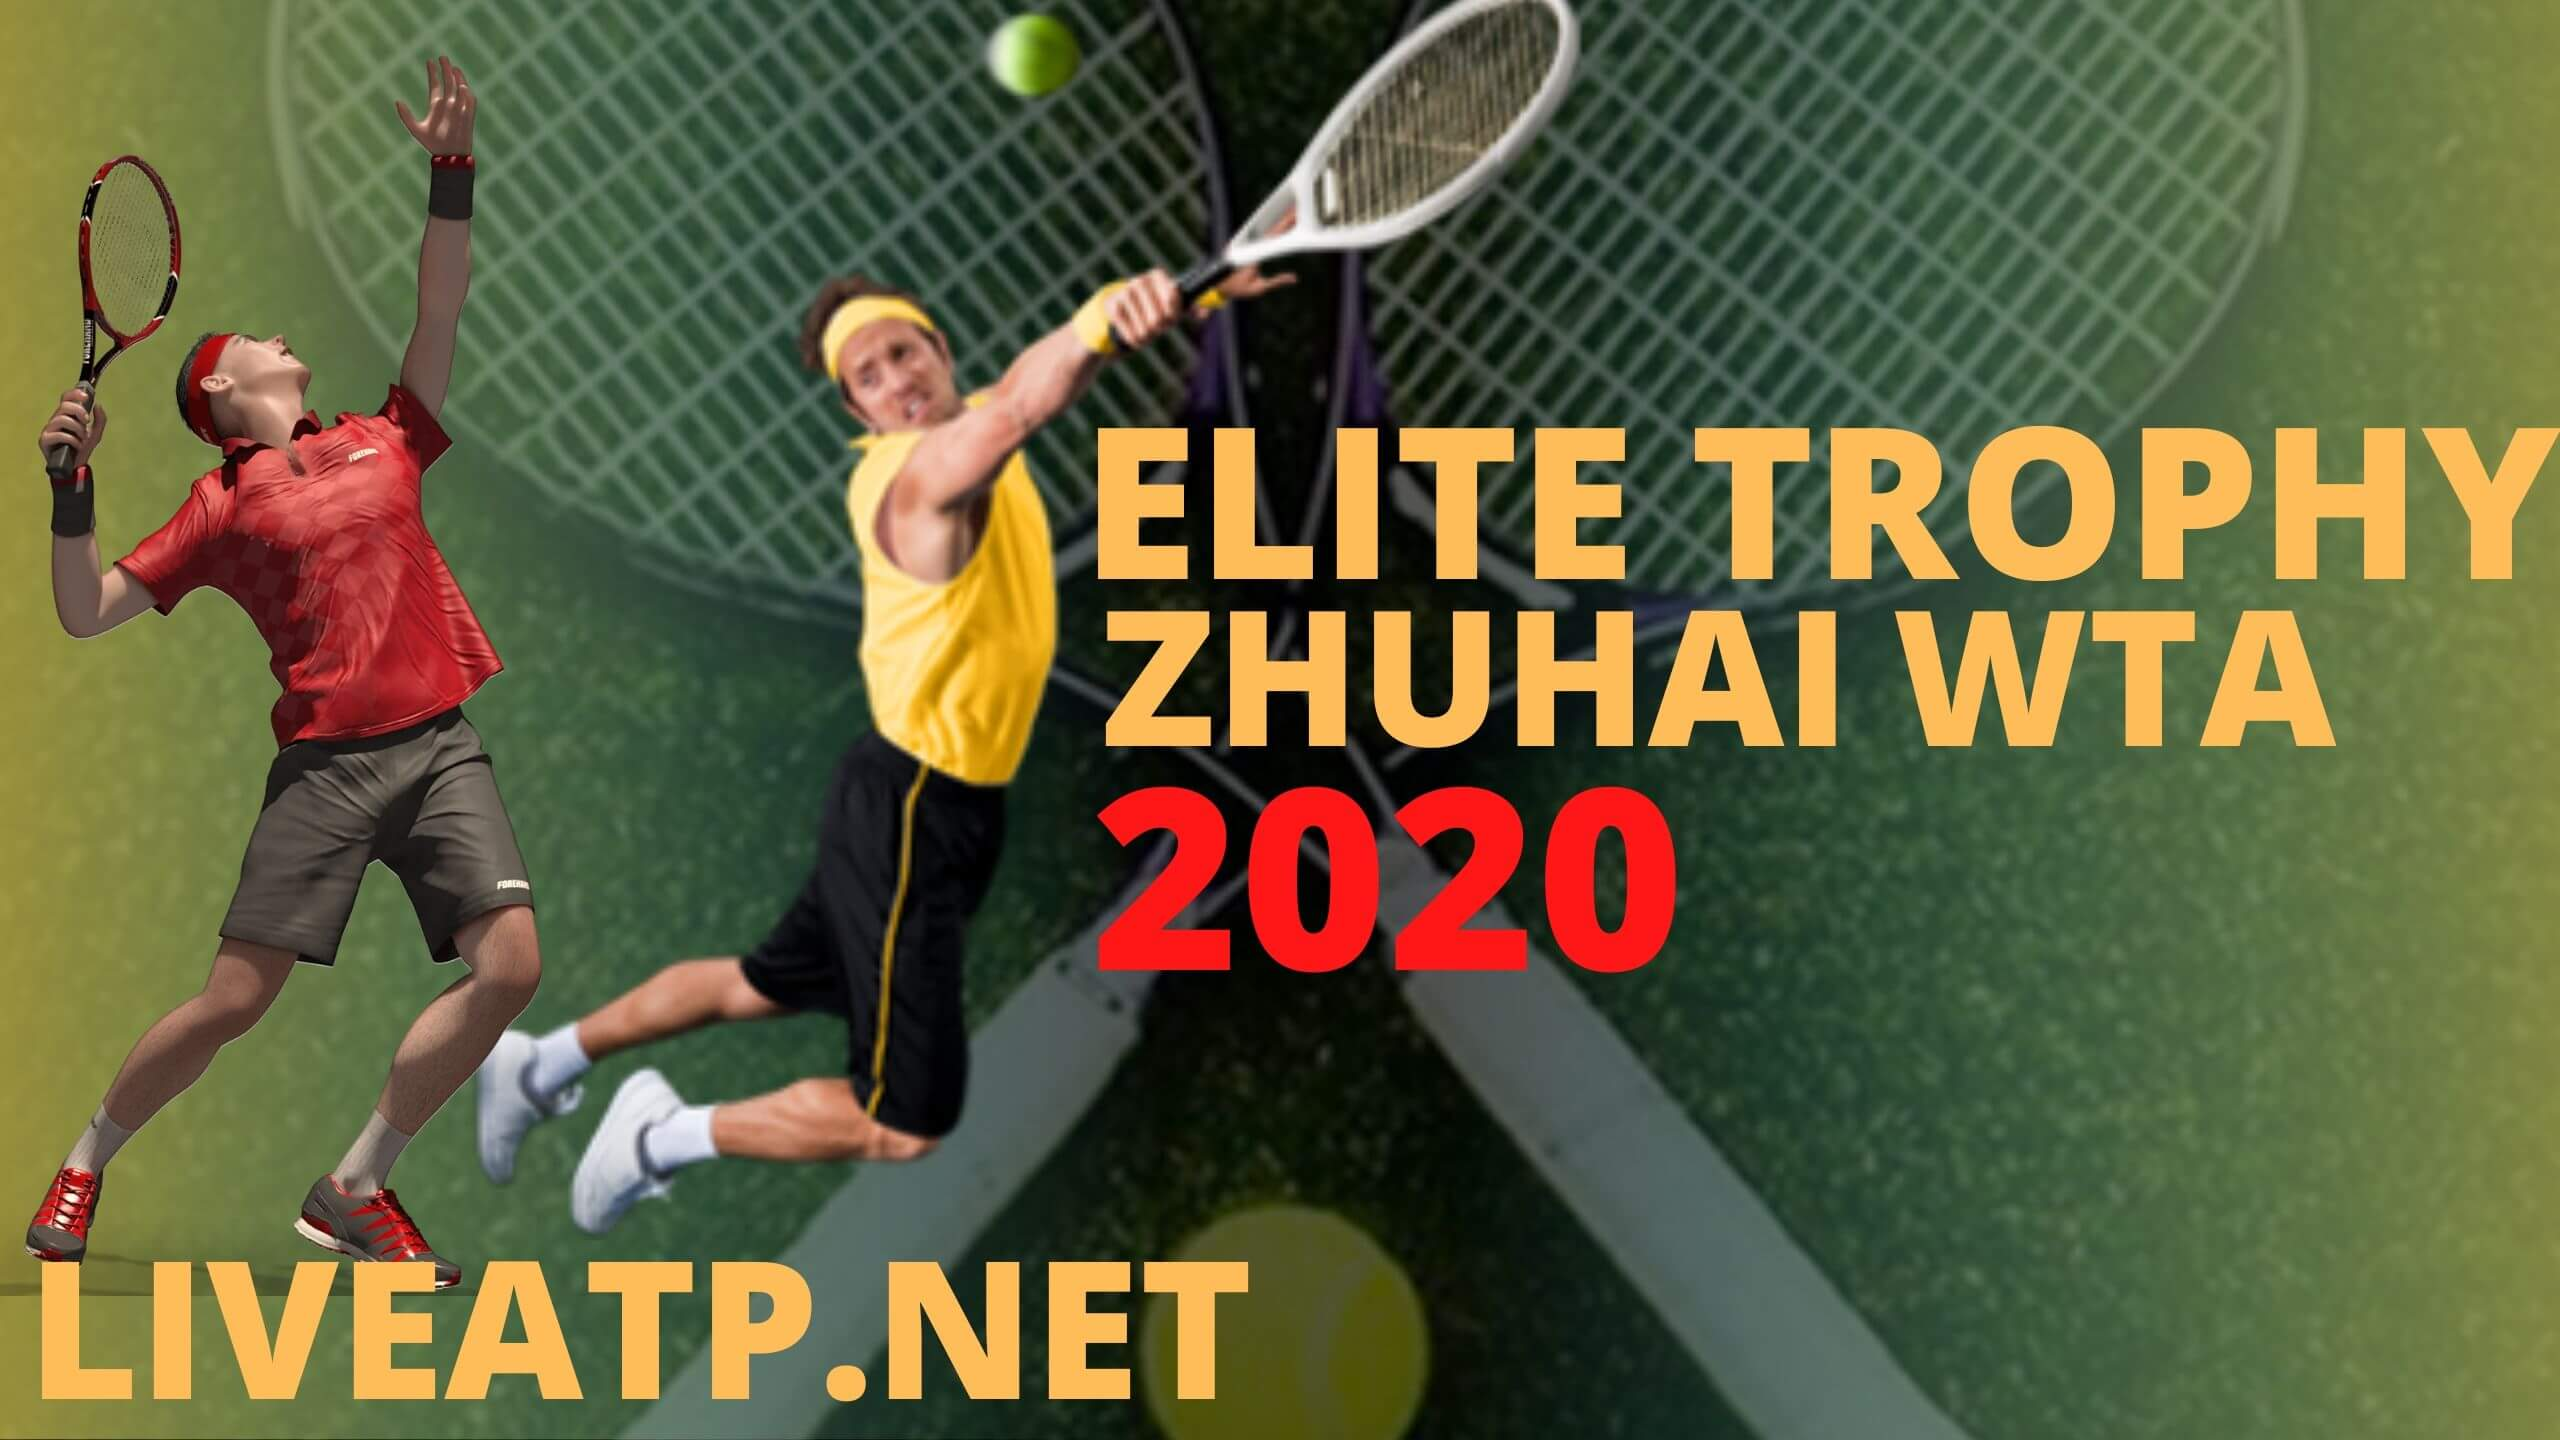 WTA Elite Trophy Zhuhai Live Stream 2020 | Day 3